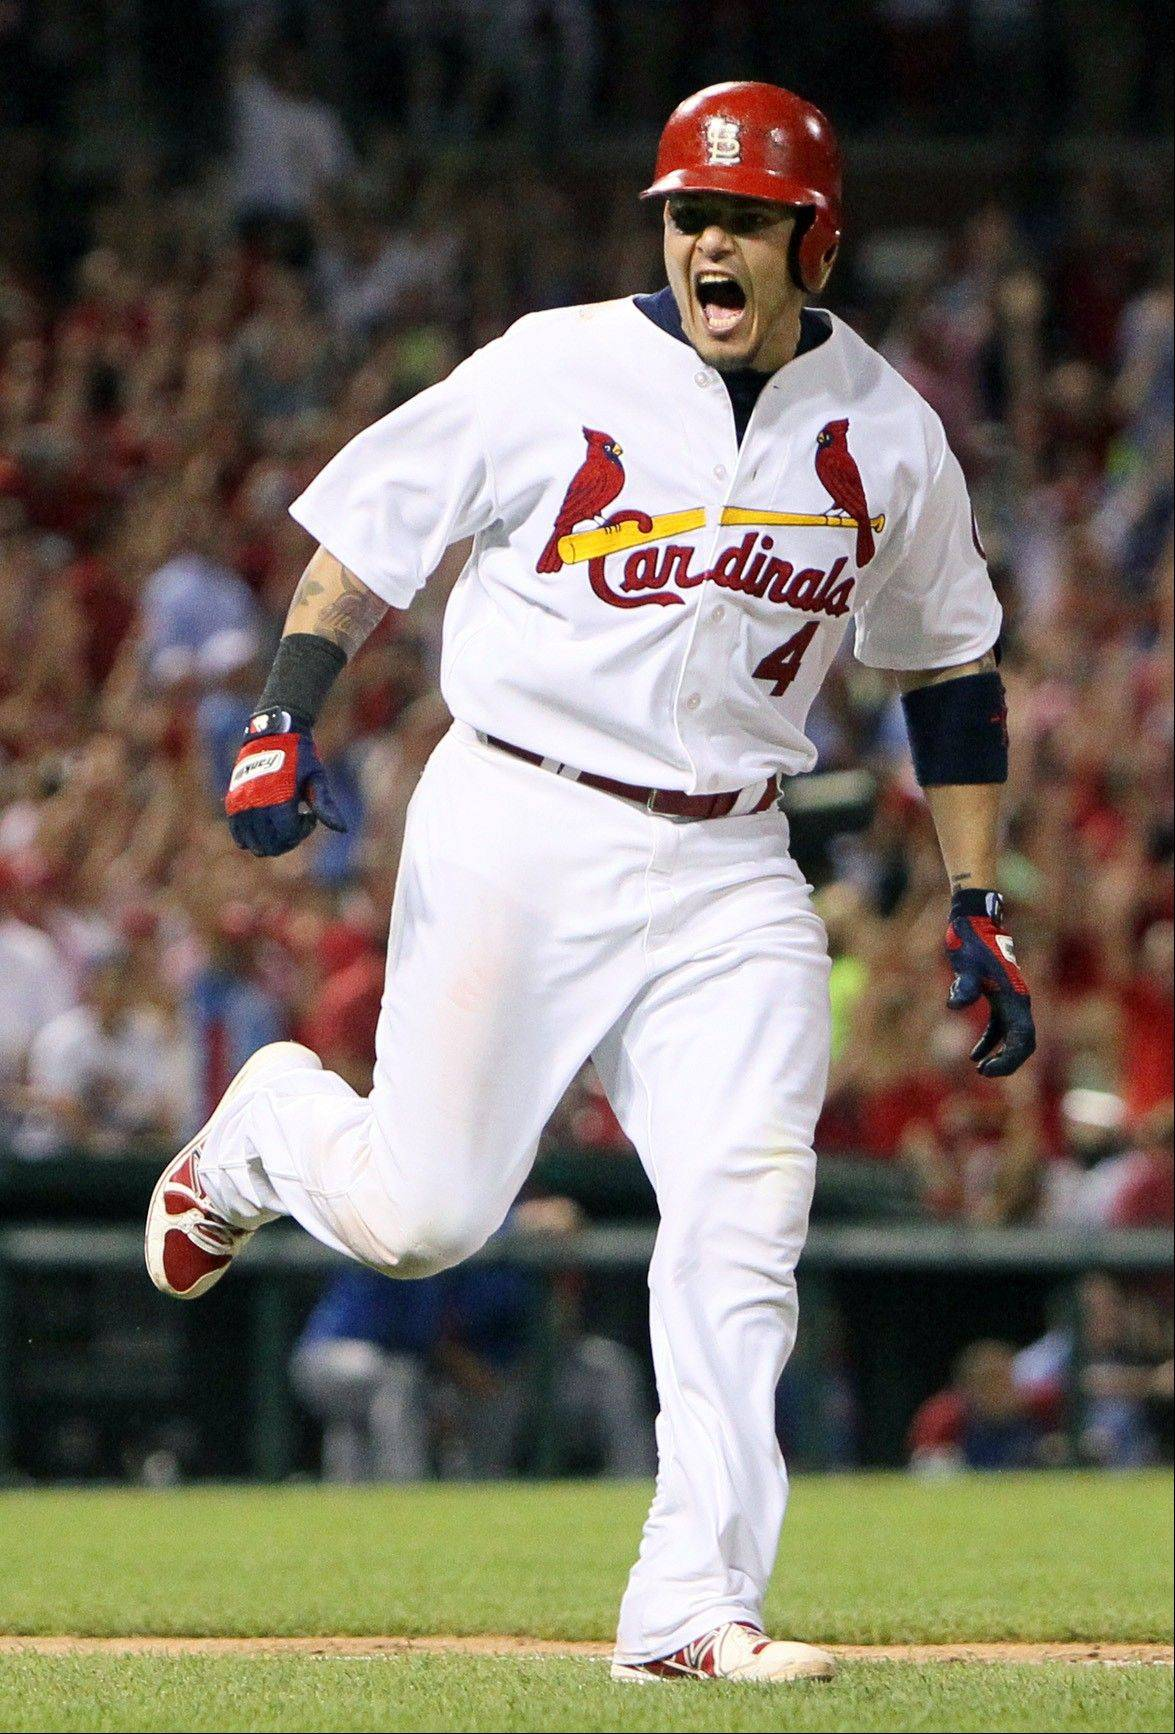 St. Louis Cardinals' Yadier Molina reacts after hitting the go-ahead two-run home run in the sixth inning of a baseball game against the Chicago Cubs on Wednesday, June 19, 2013, at Busch Stadium in St. Louis.